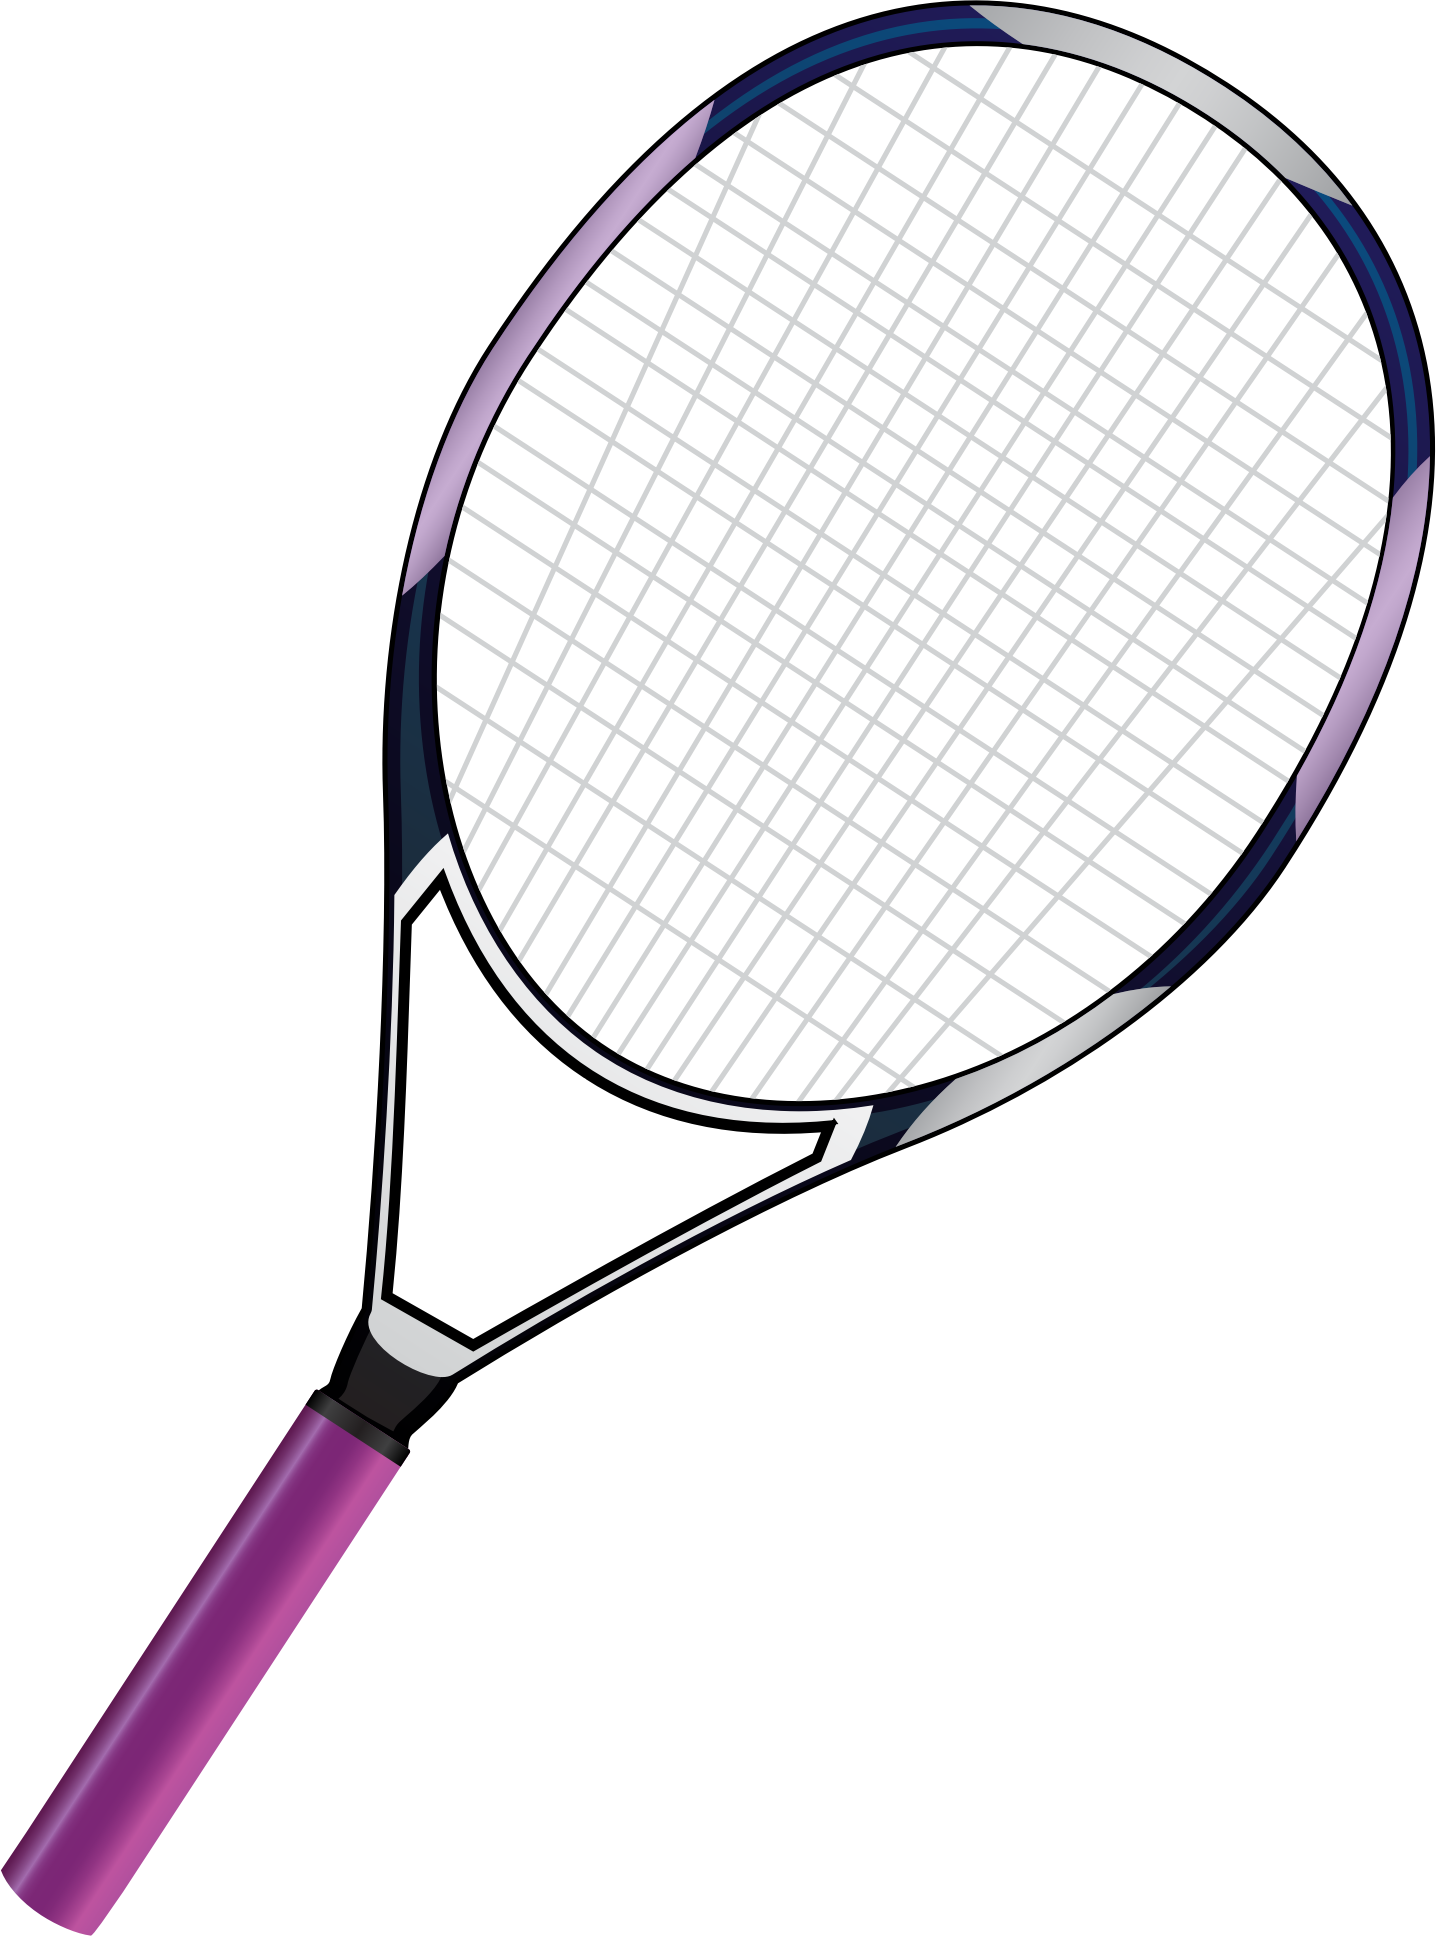 Cilpart amazing design racquet. Racket clipart pink tennis racket picture royalty free stock